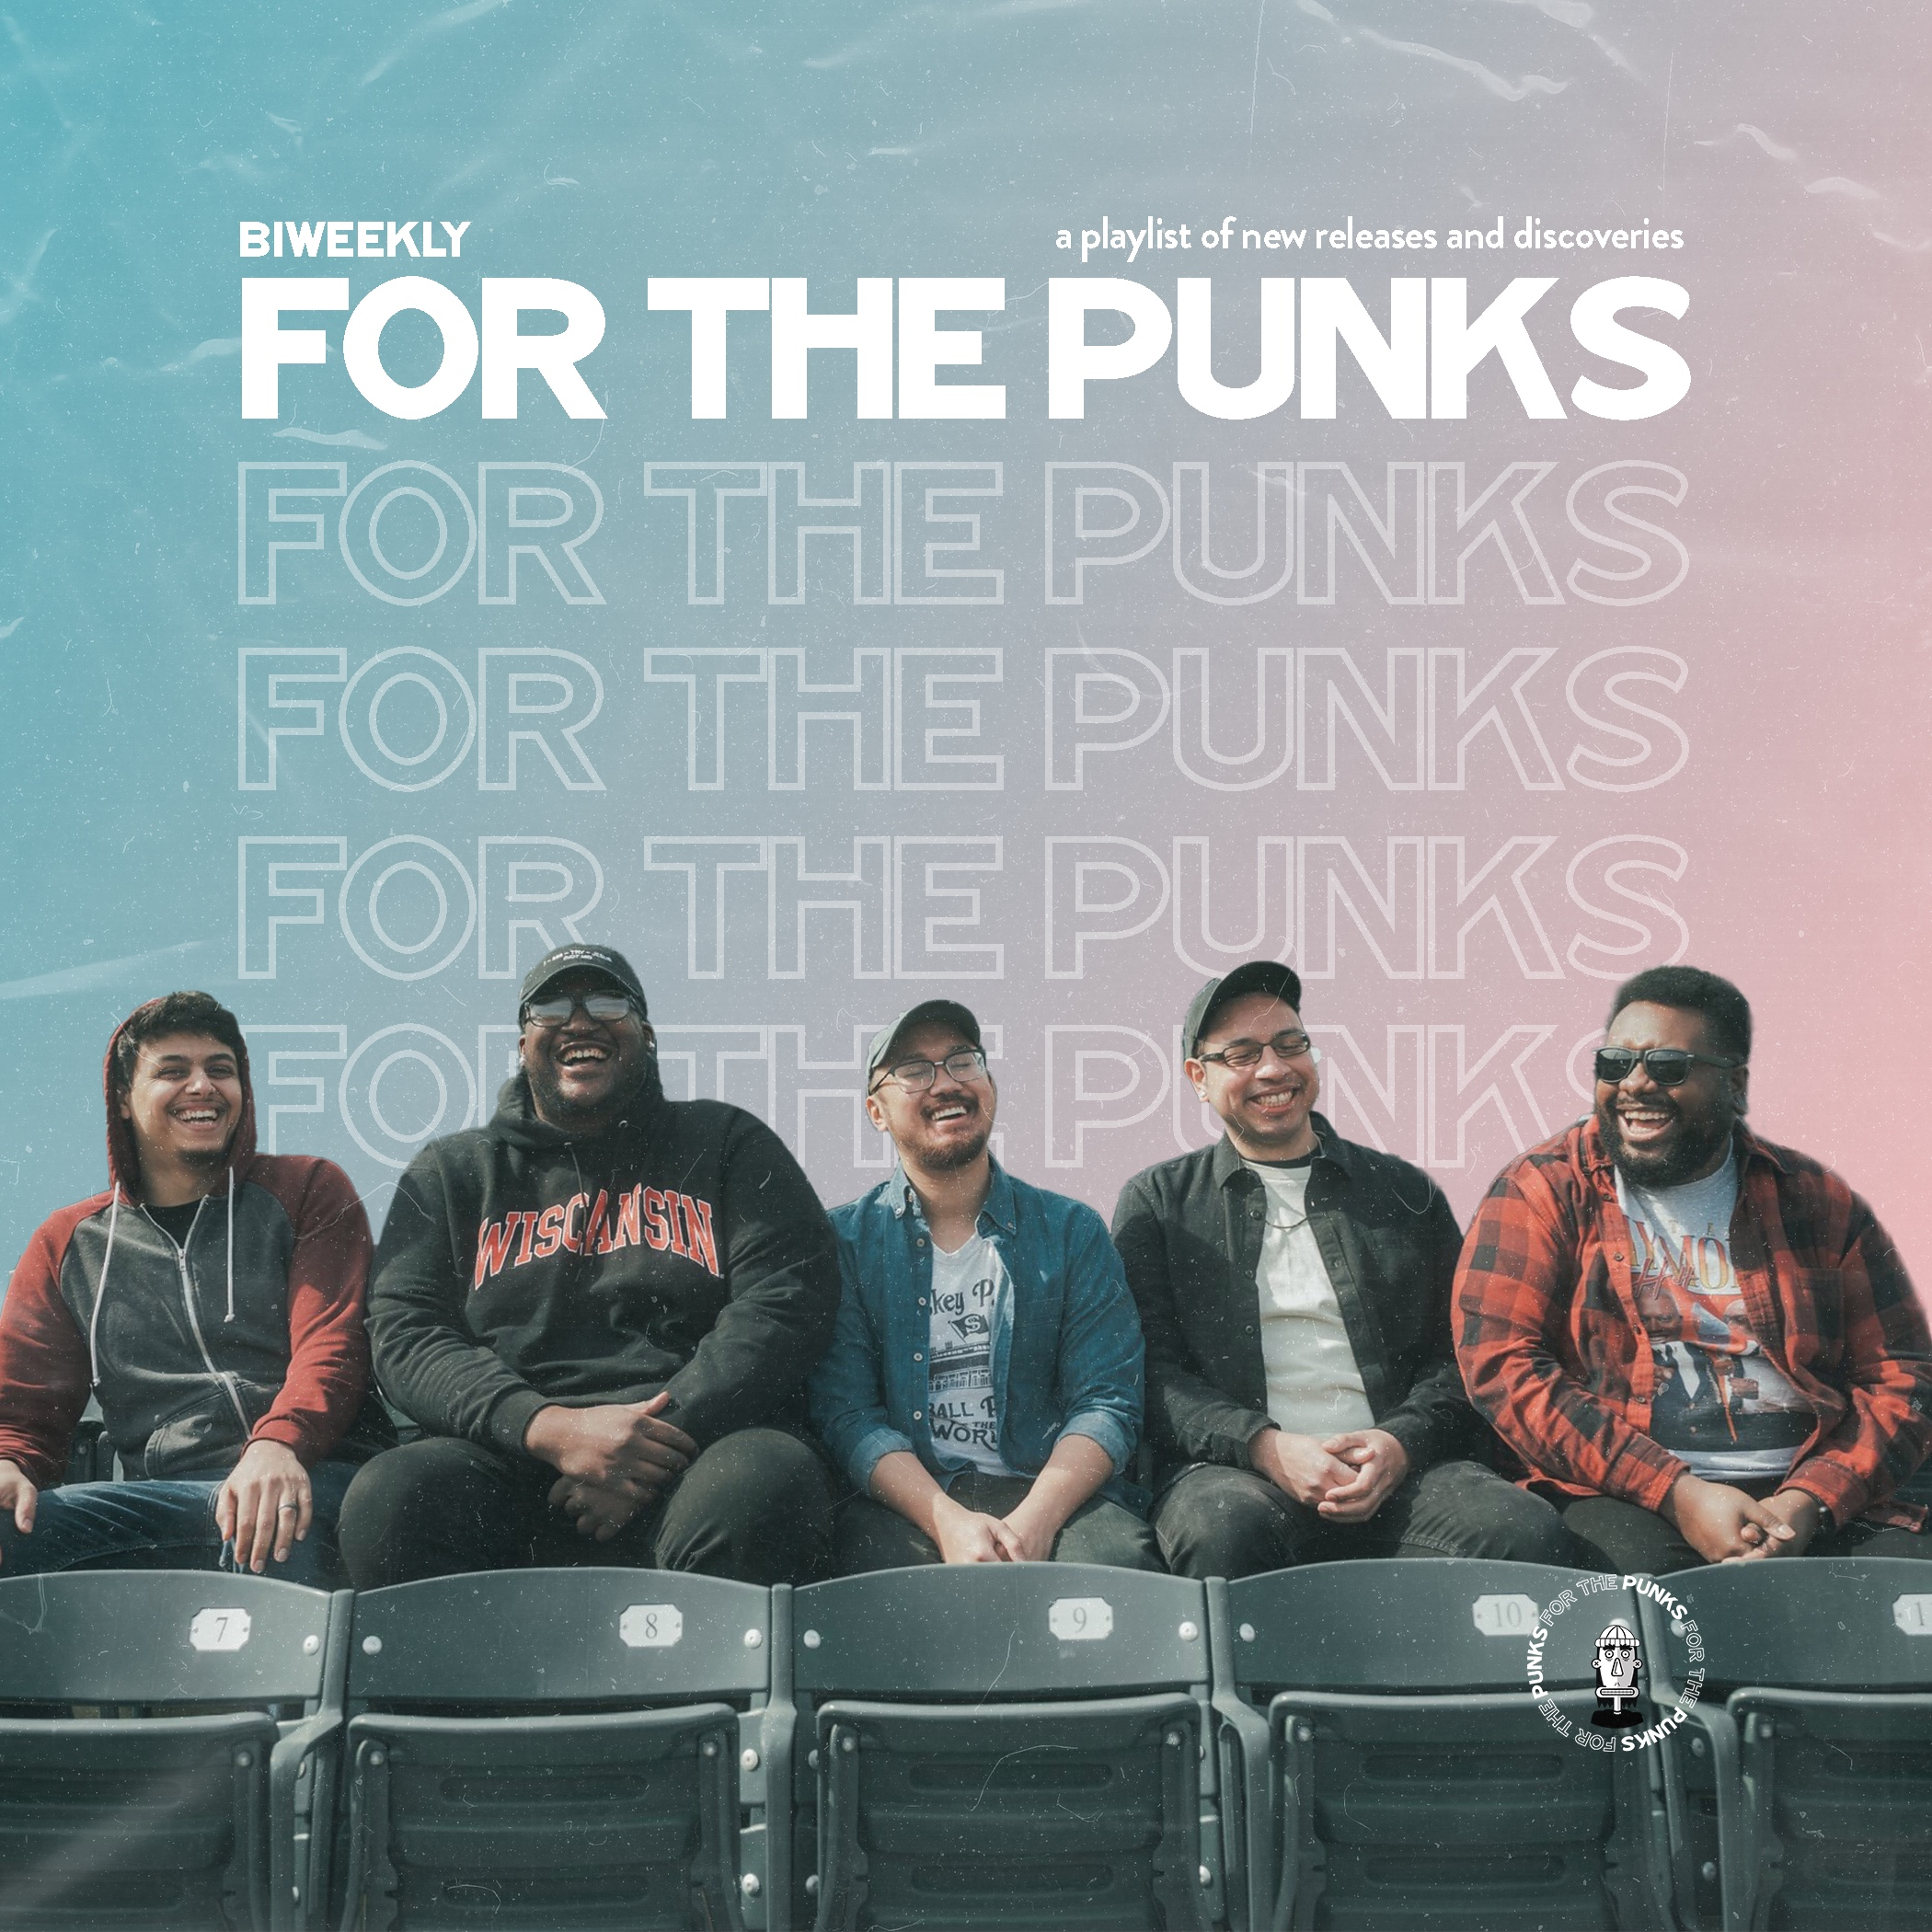 Spotify Playlist Cover for For The Punks featuring Action/Adventure